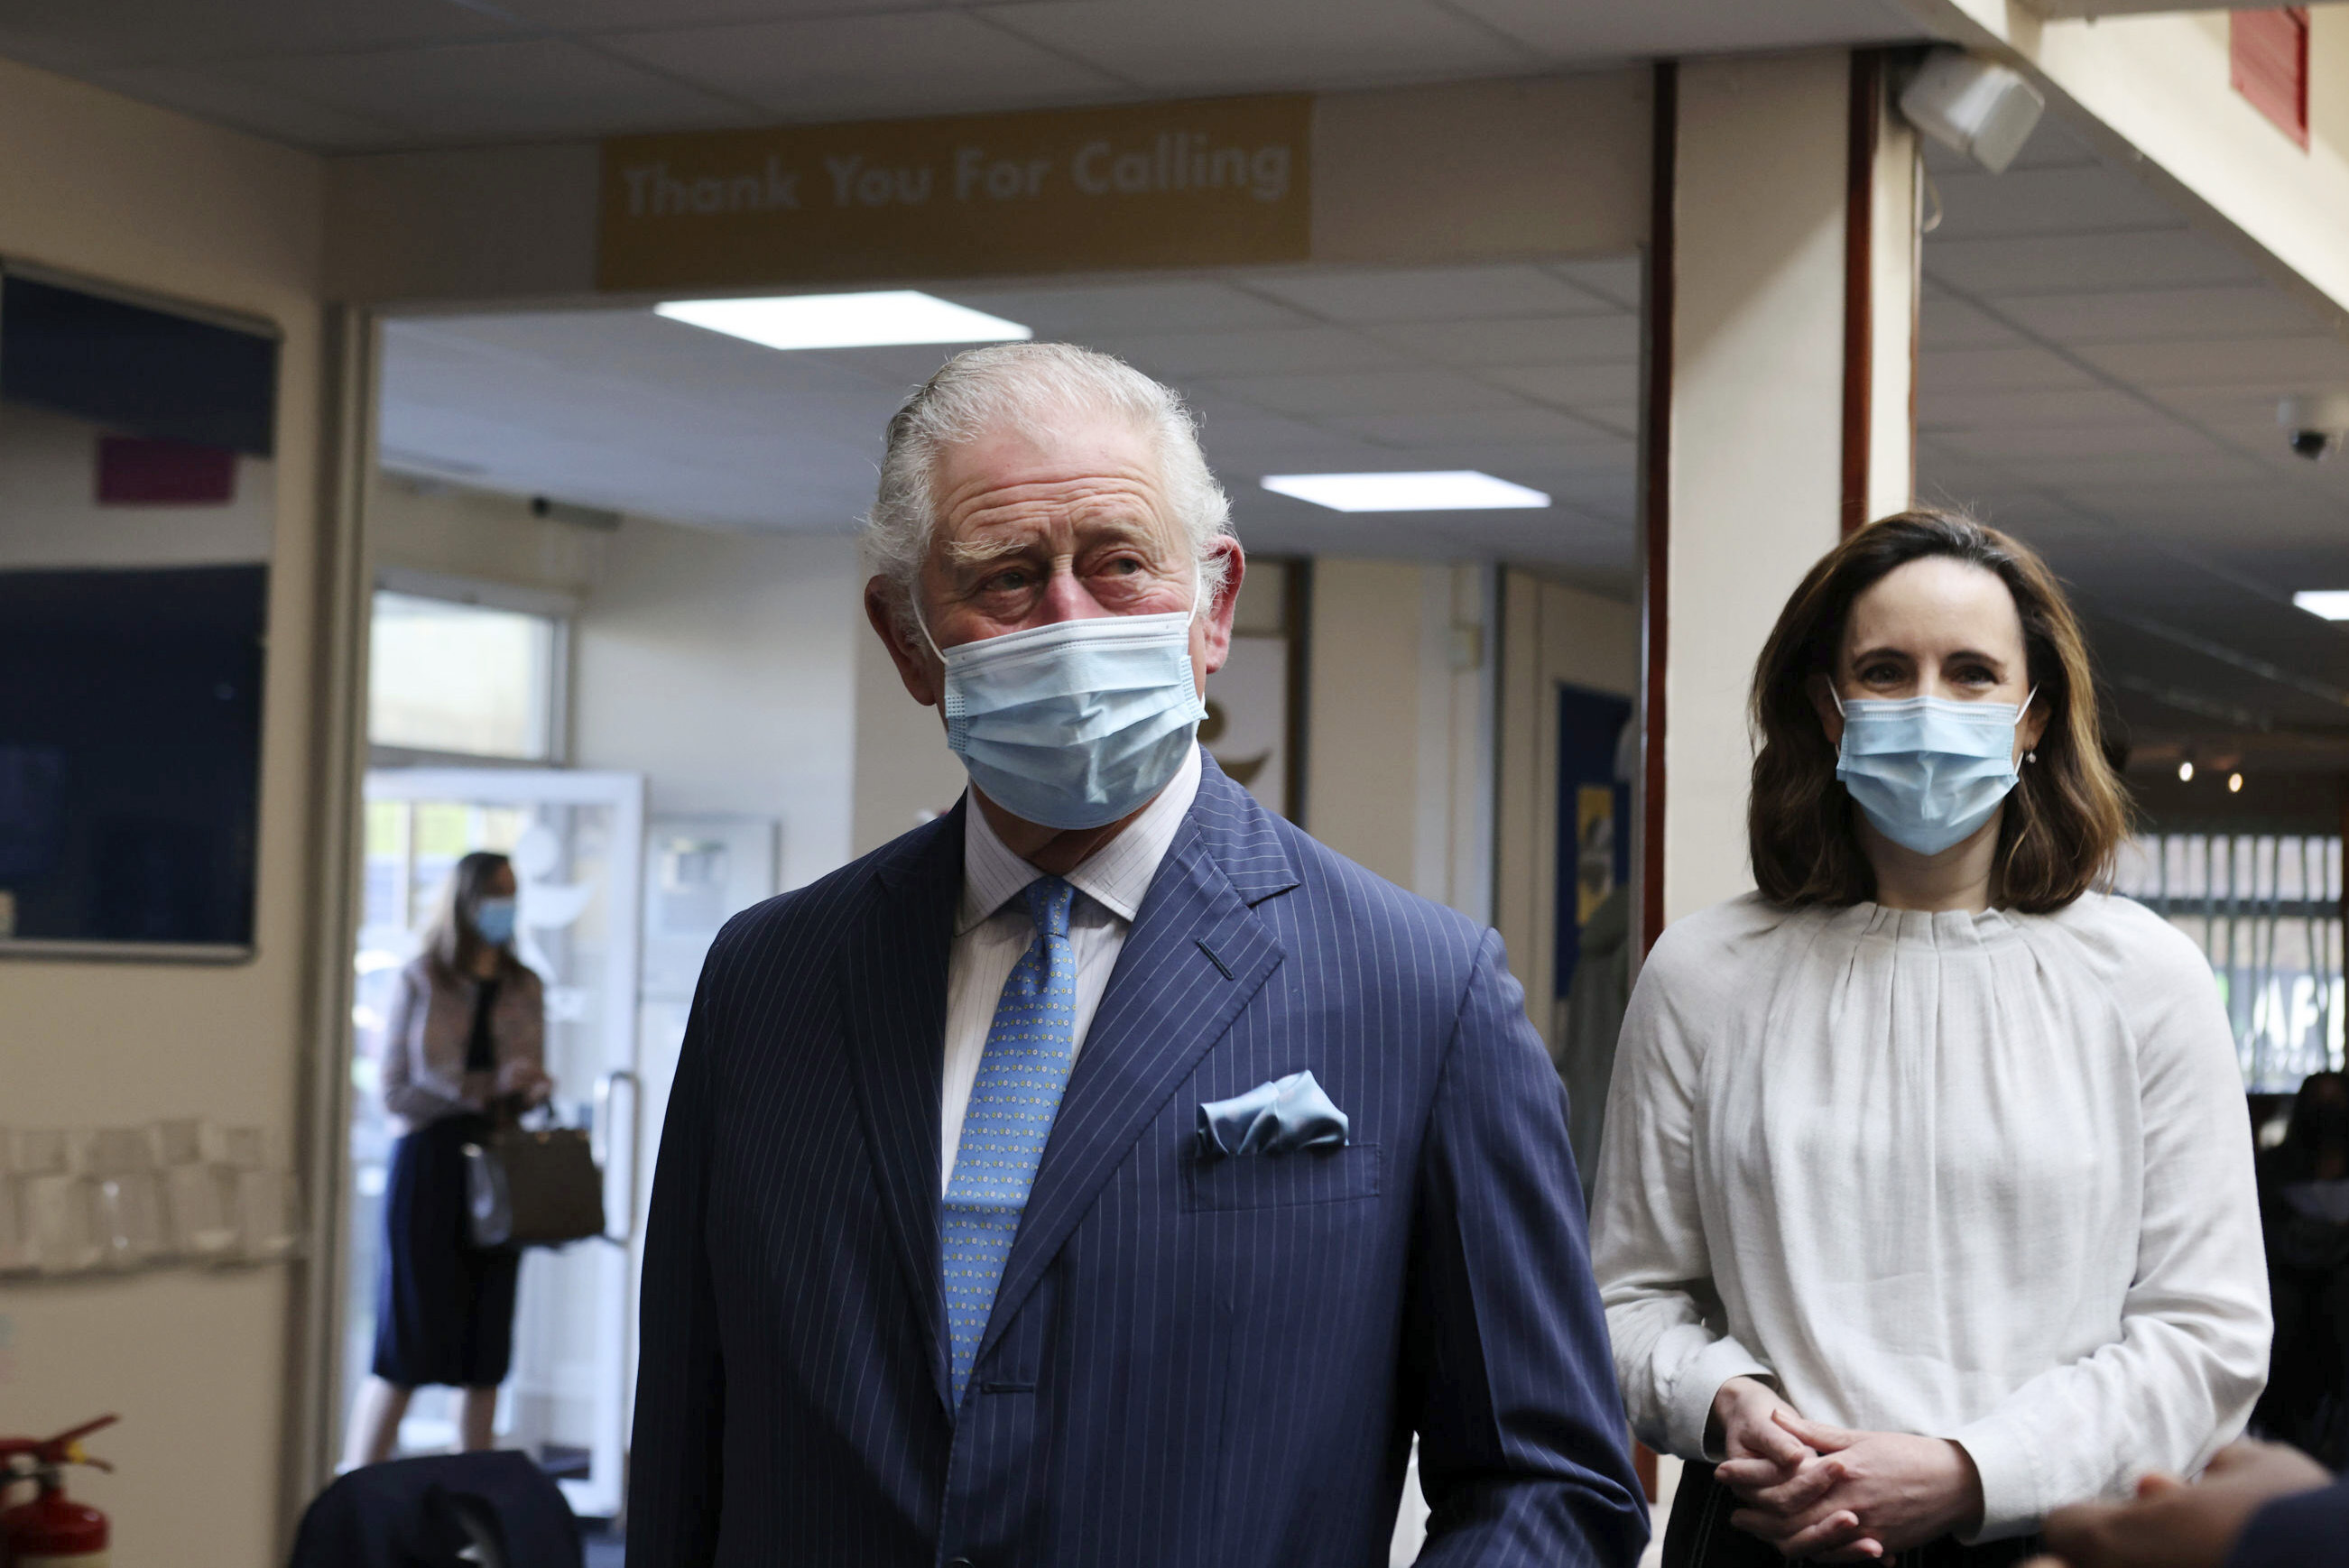 <p>Britain's Prince Charles arrives for a visit to an NHS vaccine pop-up clinic at Jesus House church, London, Tuesday March 9, 2021, where he has been told about work to combat vaccine hesitancy and support for the community during the coronavirus pandemic. (Ian Vogler/Pool via AP)</p>